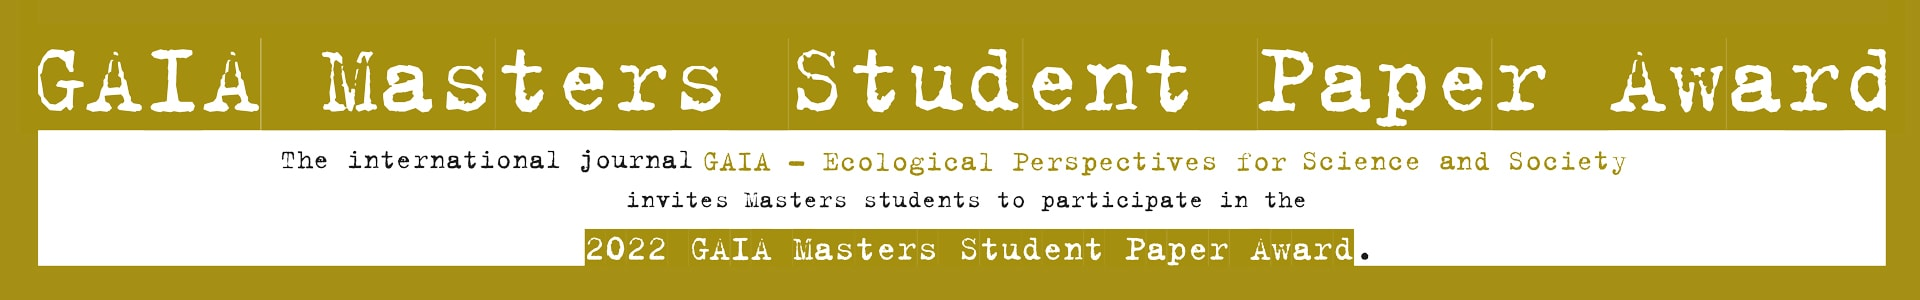 Call for participation GAIA Masters Student Paper Award